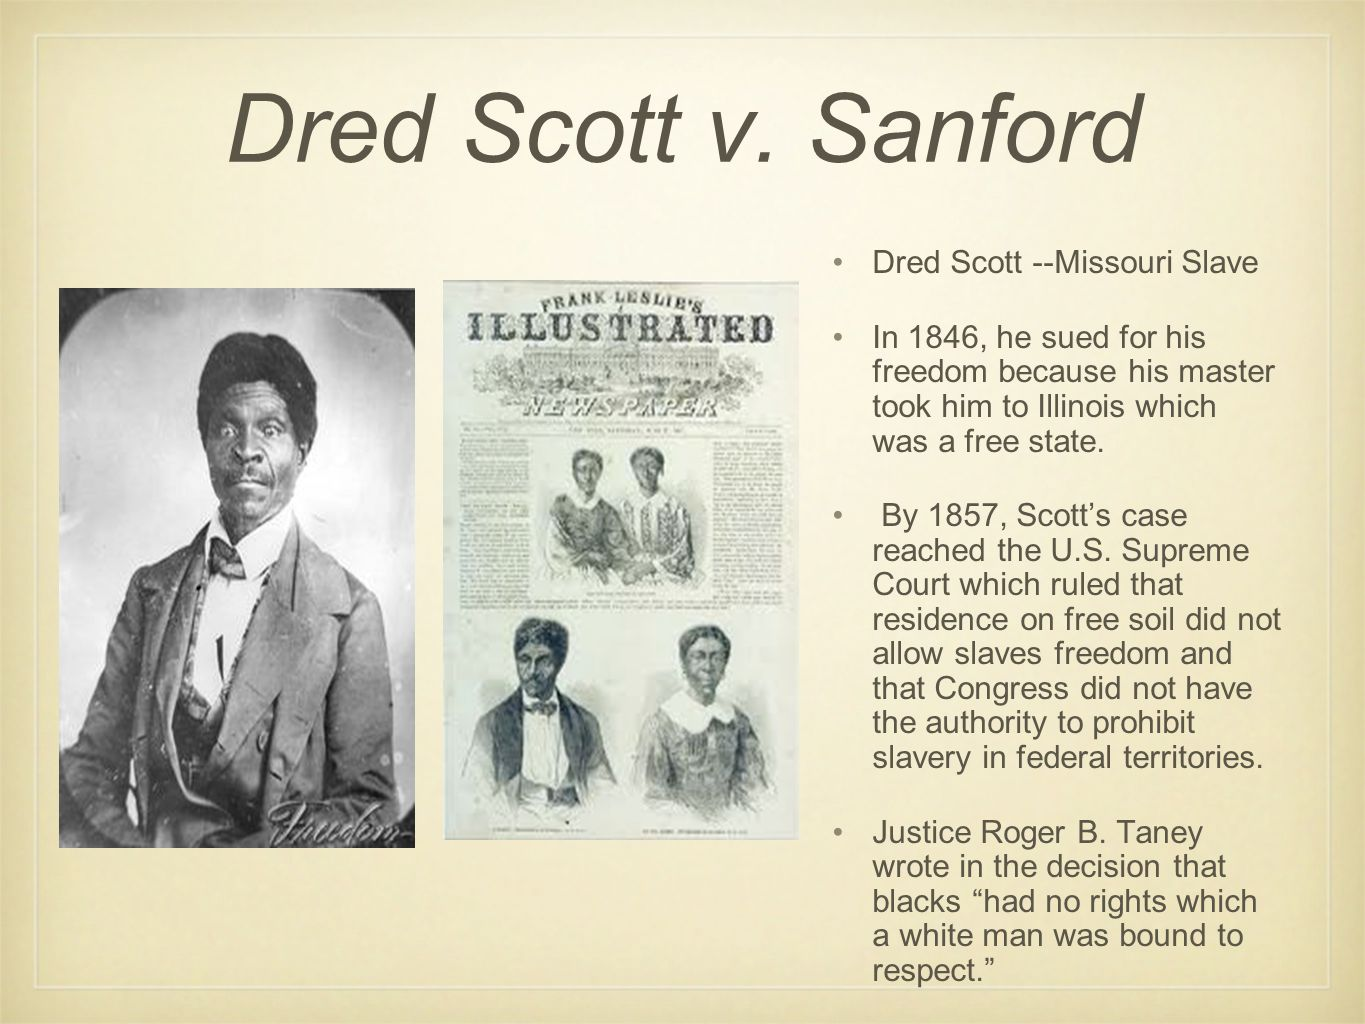 Dred Scott v. Sanford Dred Scott --Missouri Slave In 1846, he sued for his freedom because his master took him to Illinois which was a free state. By